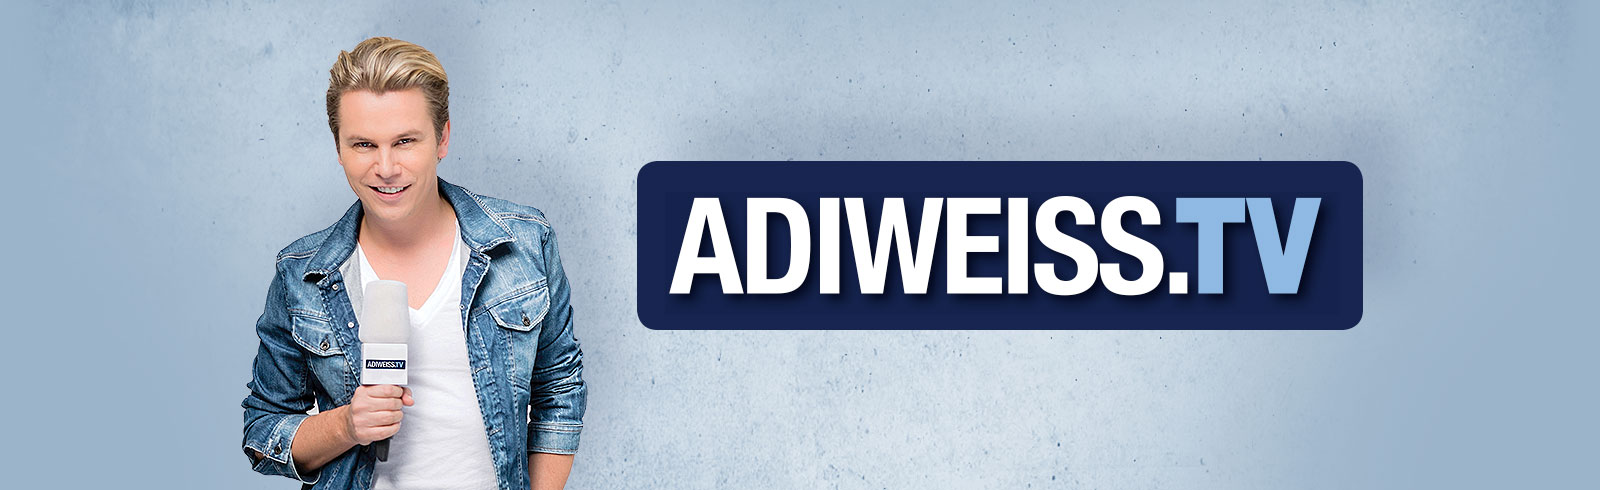 AdiWeiss.tv